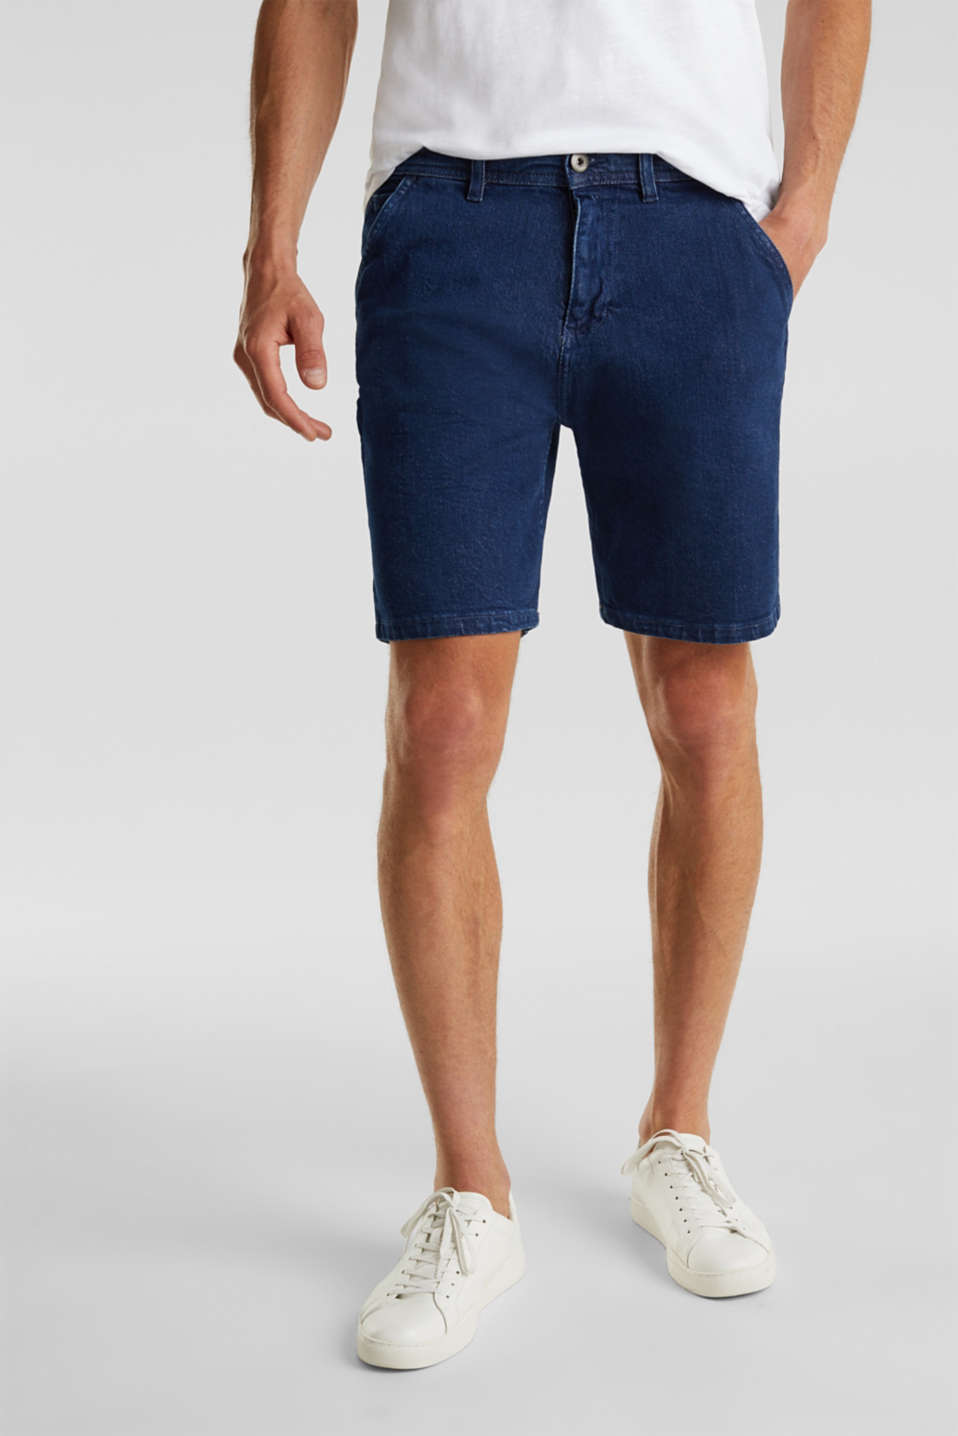 edc - Denim shorts in a utility look